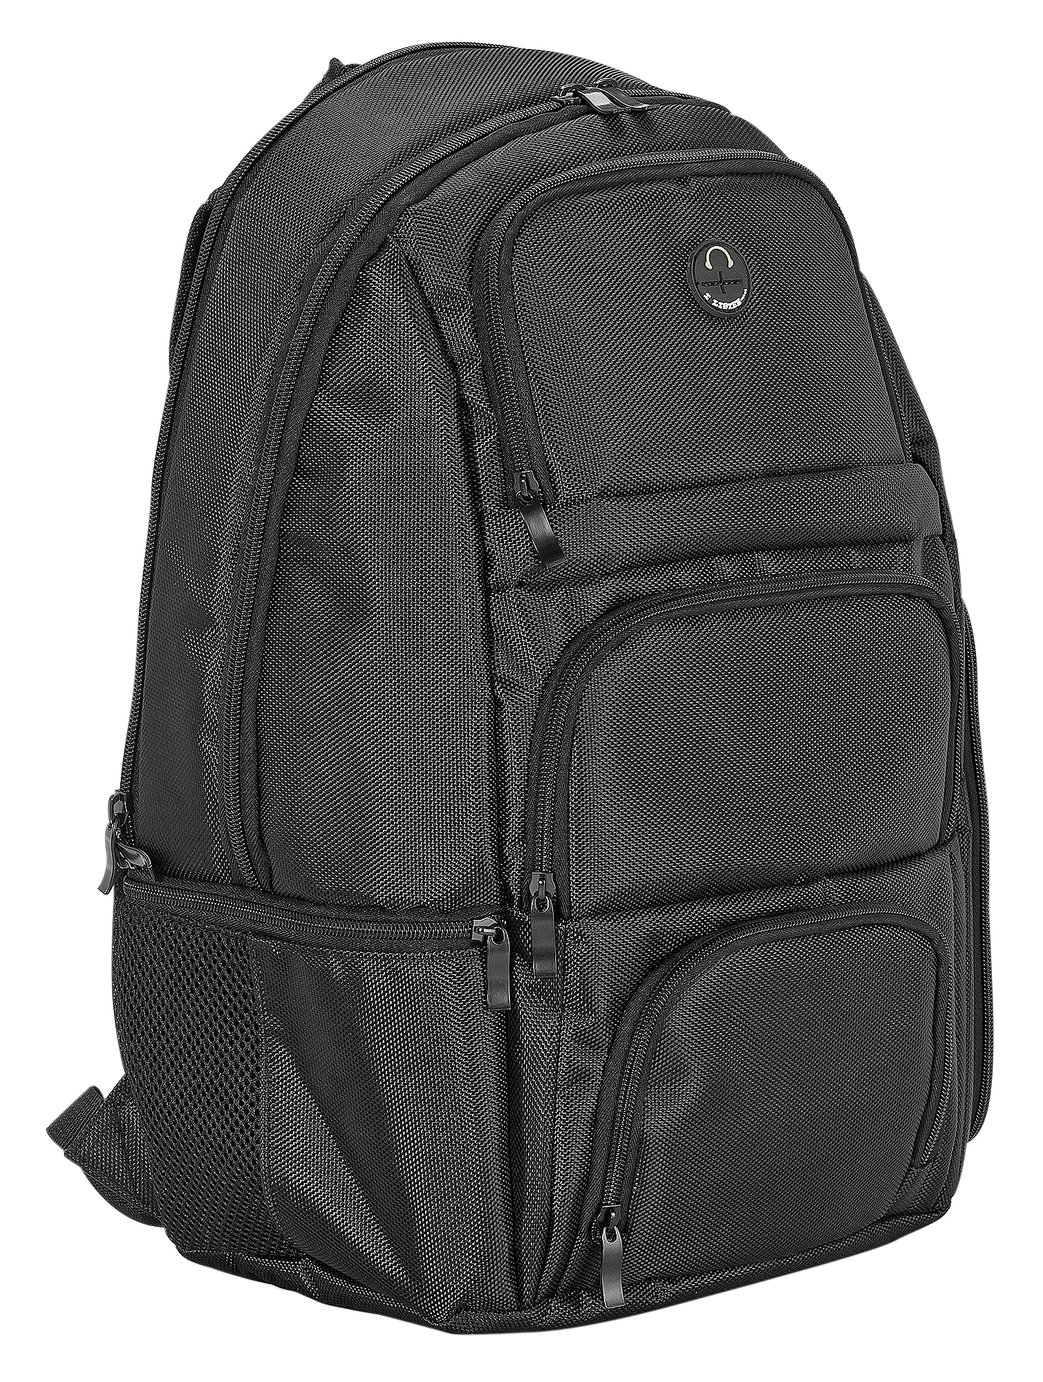 Image of Go Explore Business Backpack